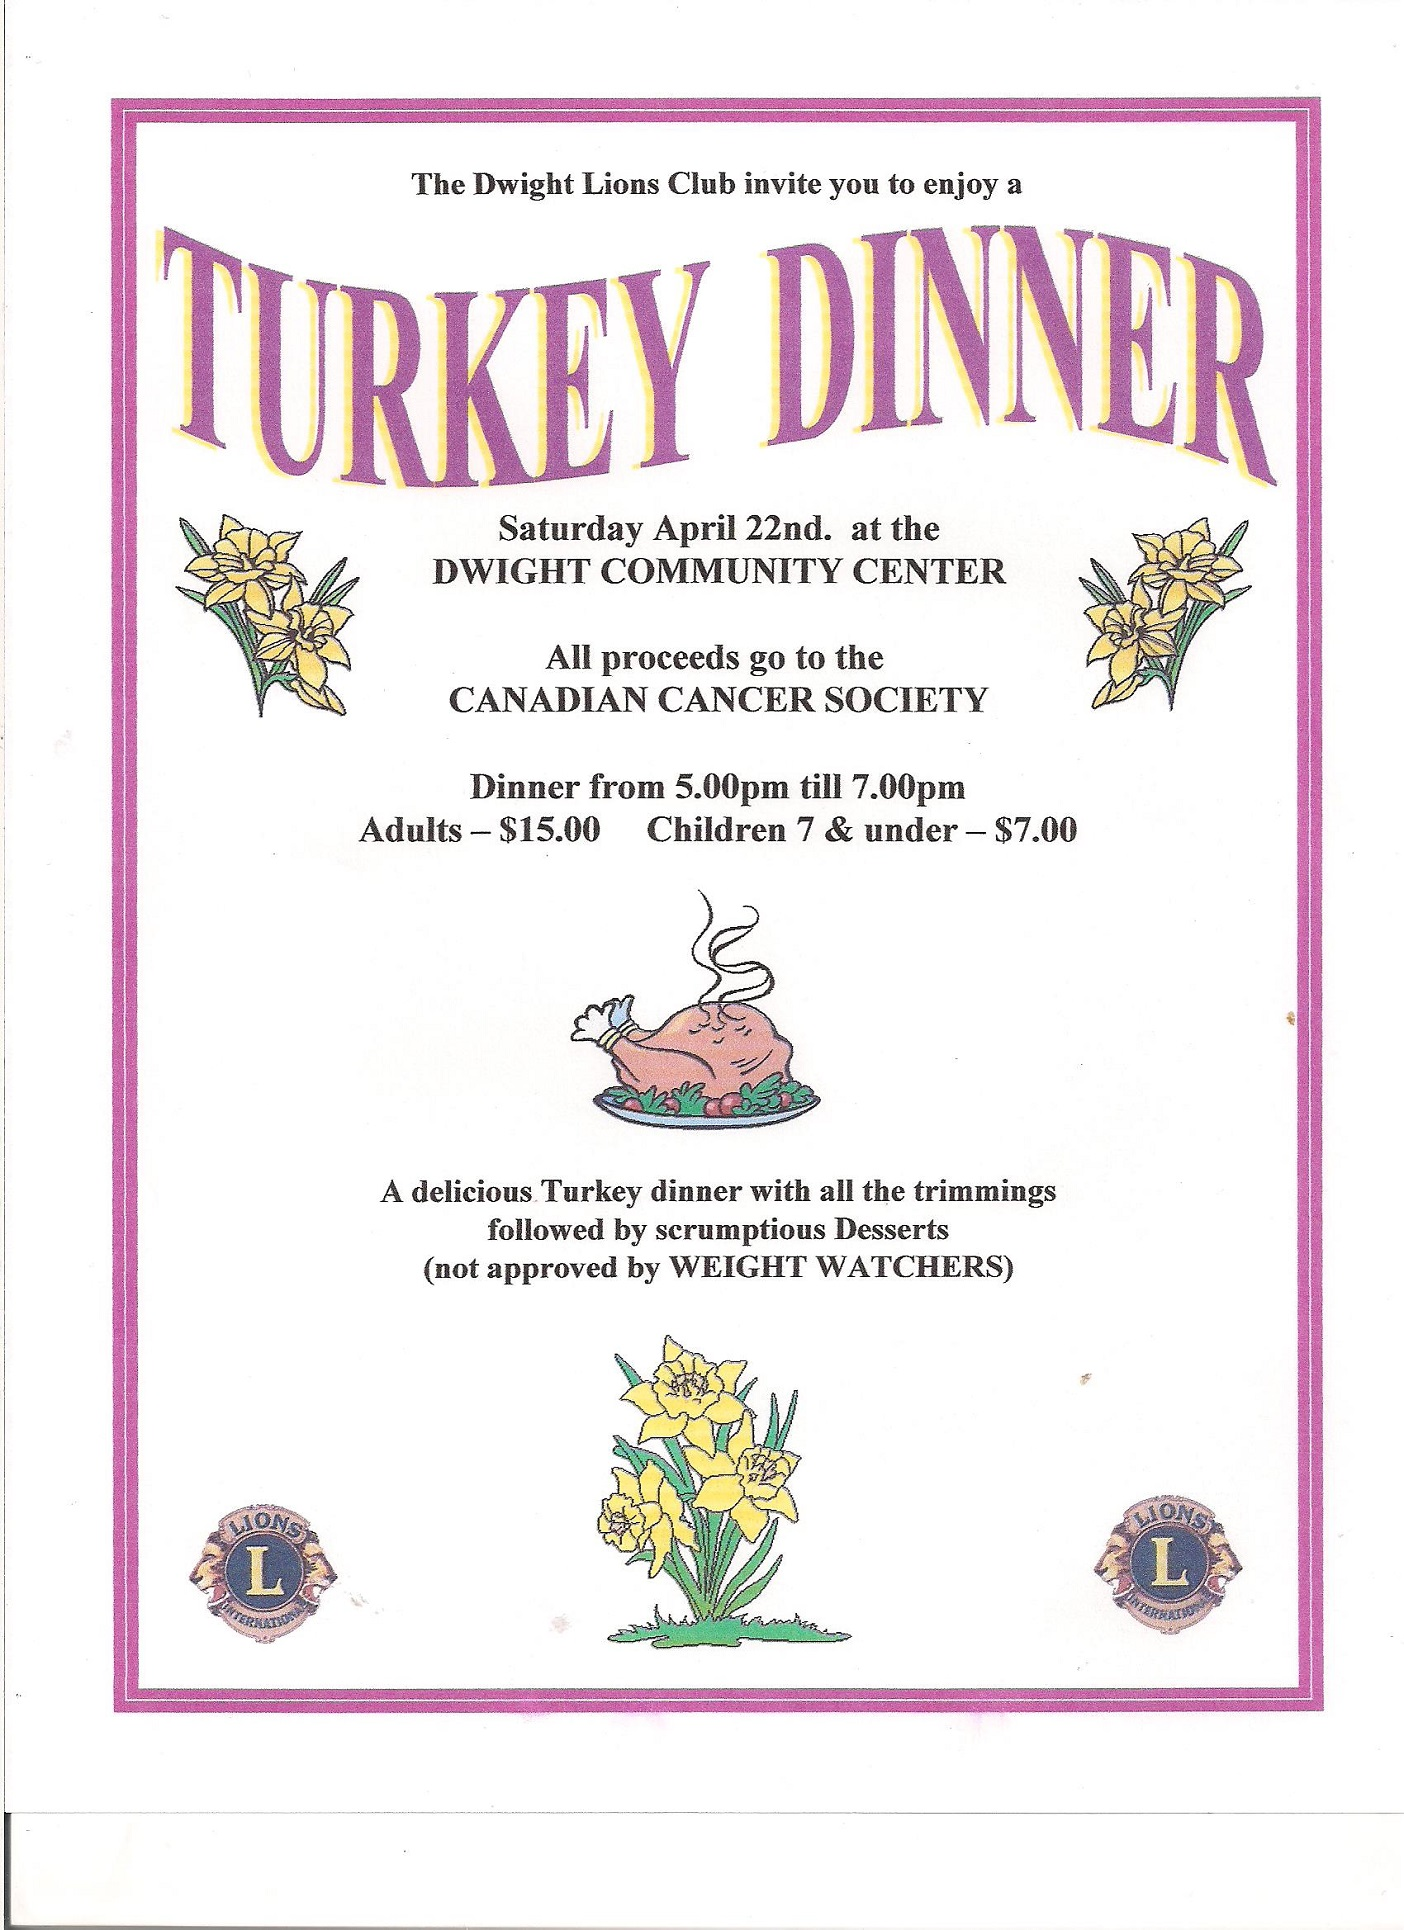 Turkey dinner in support of the canadian cancer society for Thanksgiving dinner with all the trimmings